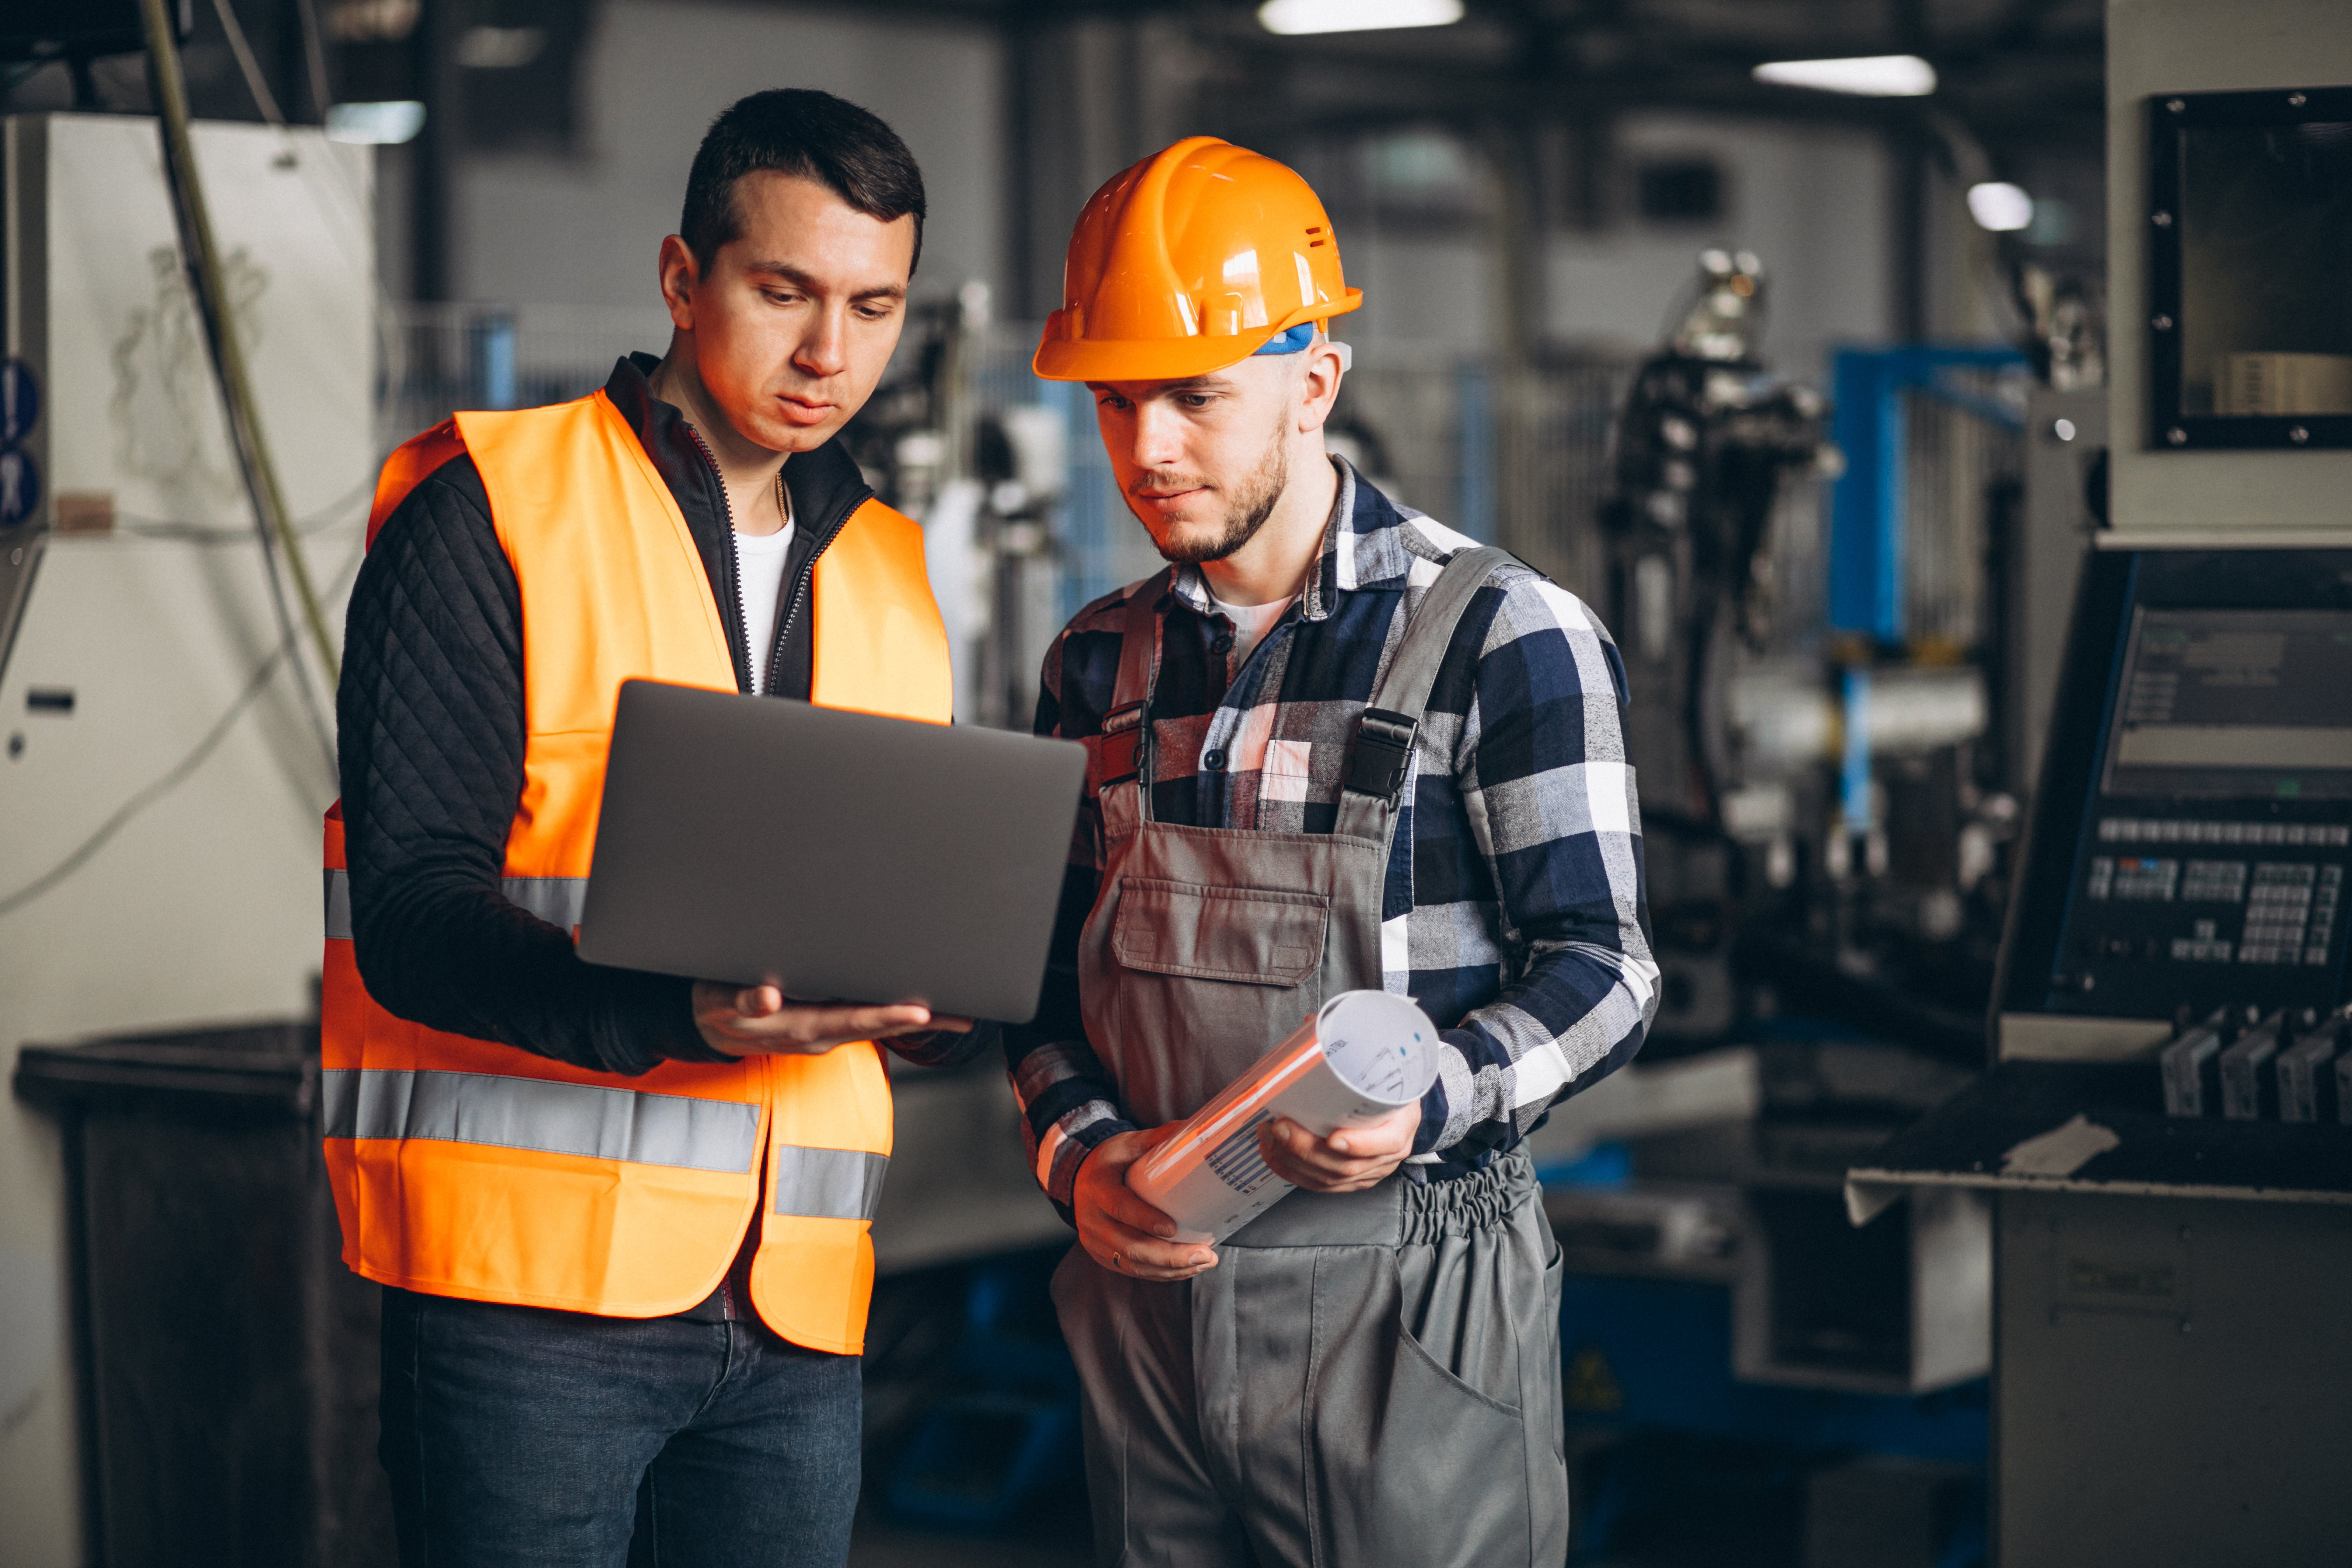 Top 5 Social Media Channels for the Manufacturing Industry